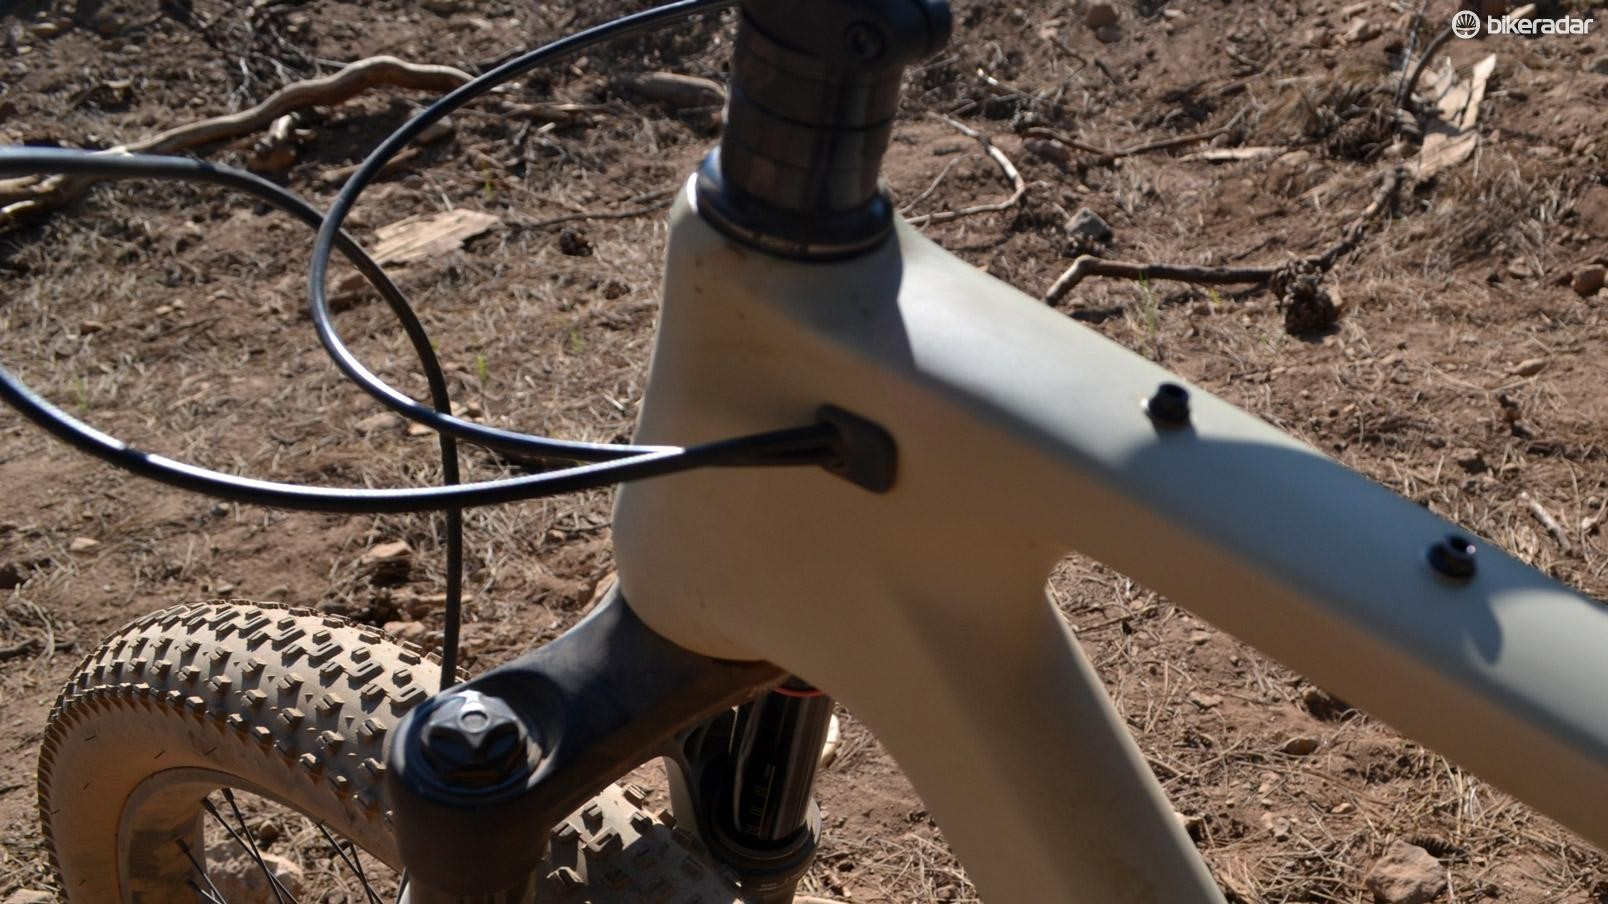 Internal cable routing is nice, but cable rattle could be heard in the frame